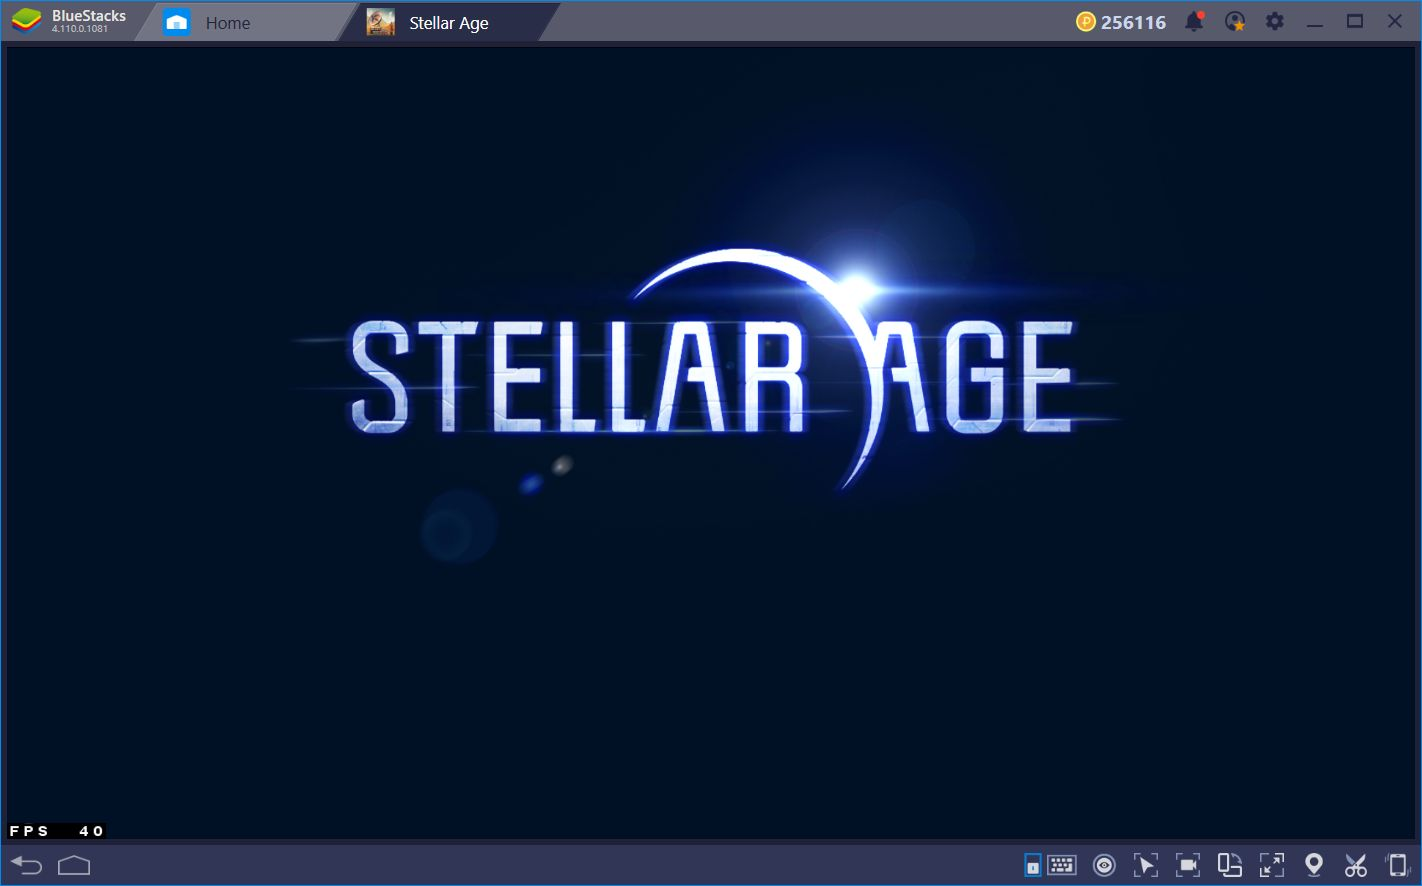 Stellar Age: A Mobile Game With a Dash of Space Exploration